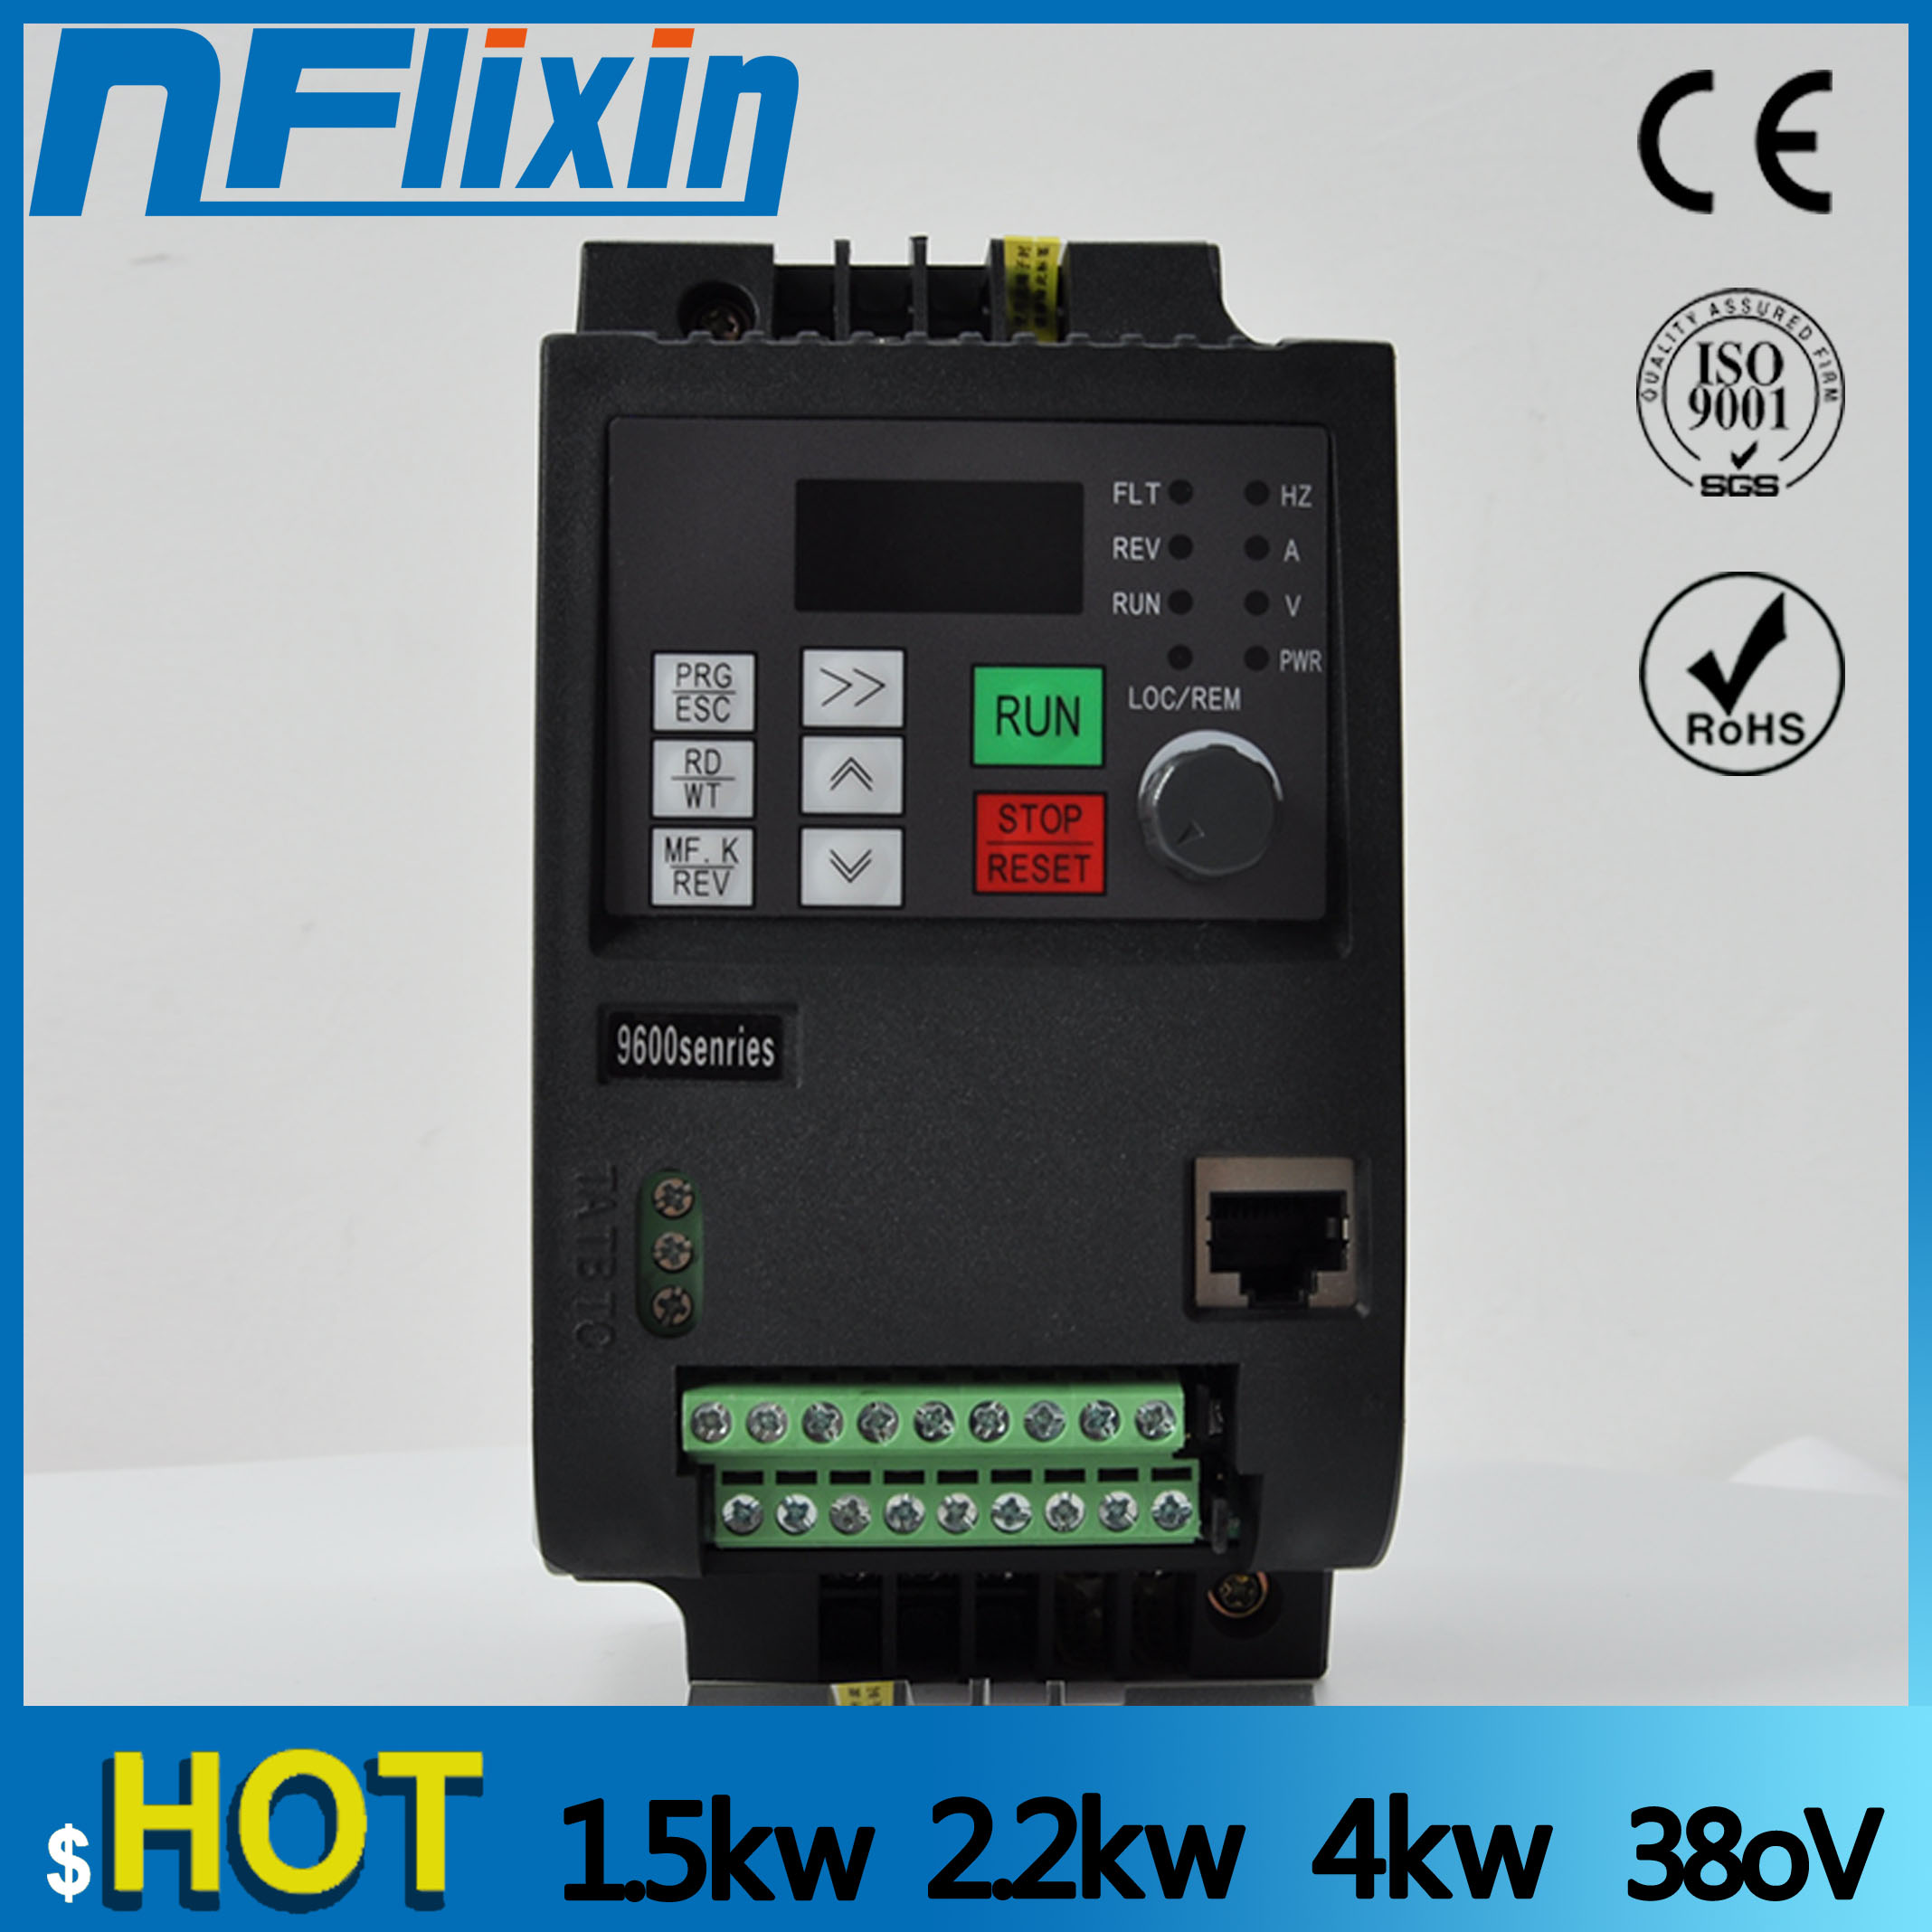 4kw 380v AC Frequency Inverter & Converter Three phase input 380v 3 phase output ac drives /frequency converter4kw 380v AC Frequency Inverter & Converter Three phase input 380v 3 phase output ac drives /frequency converter